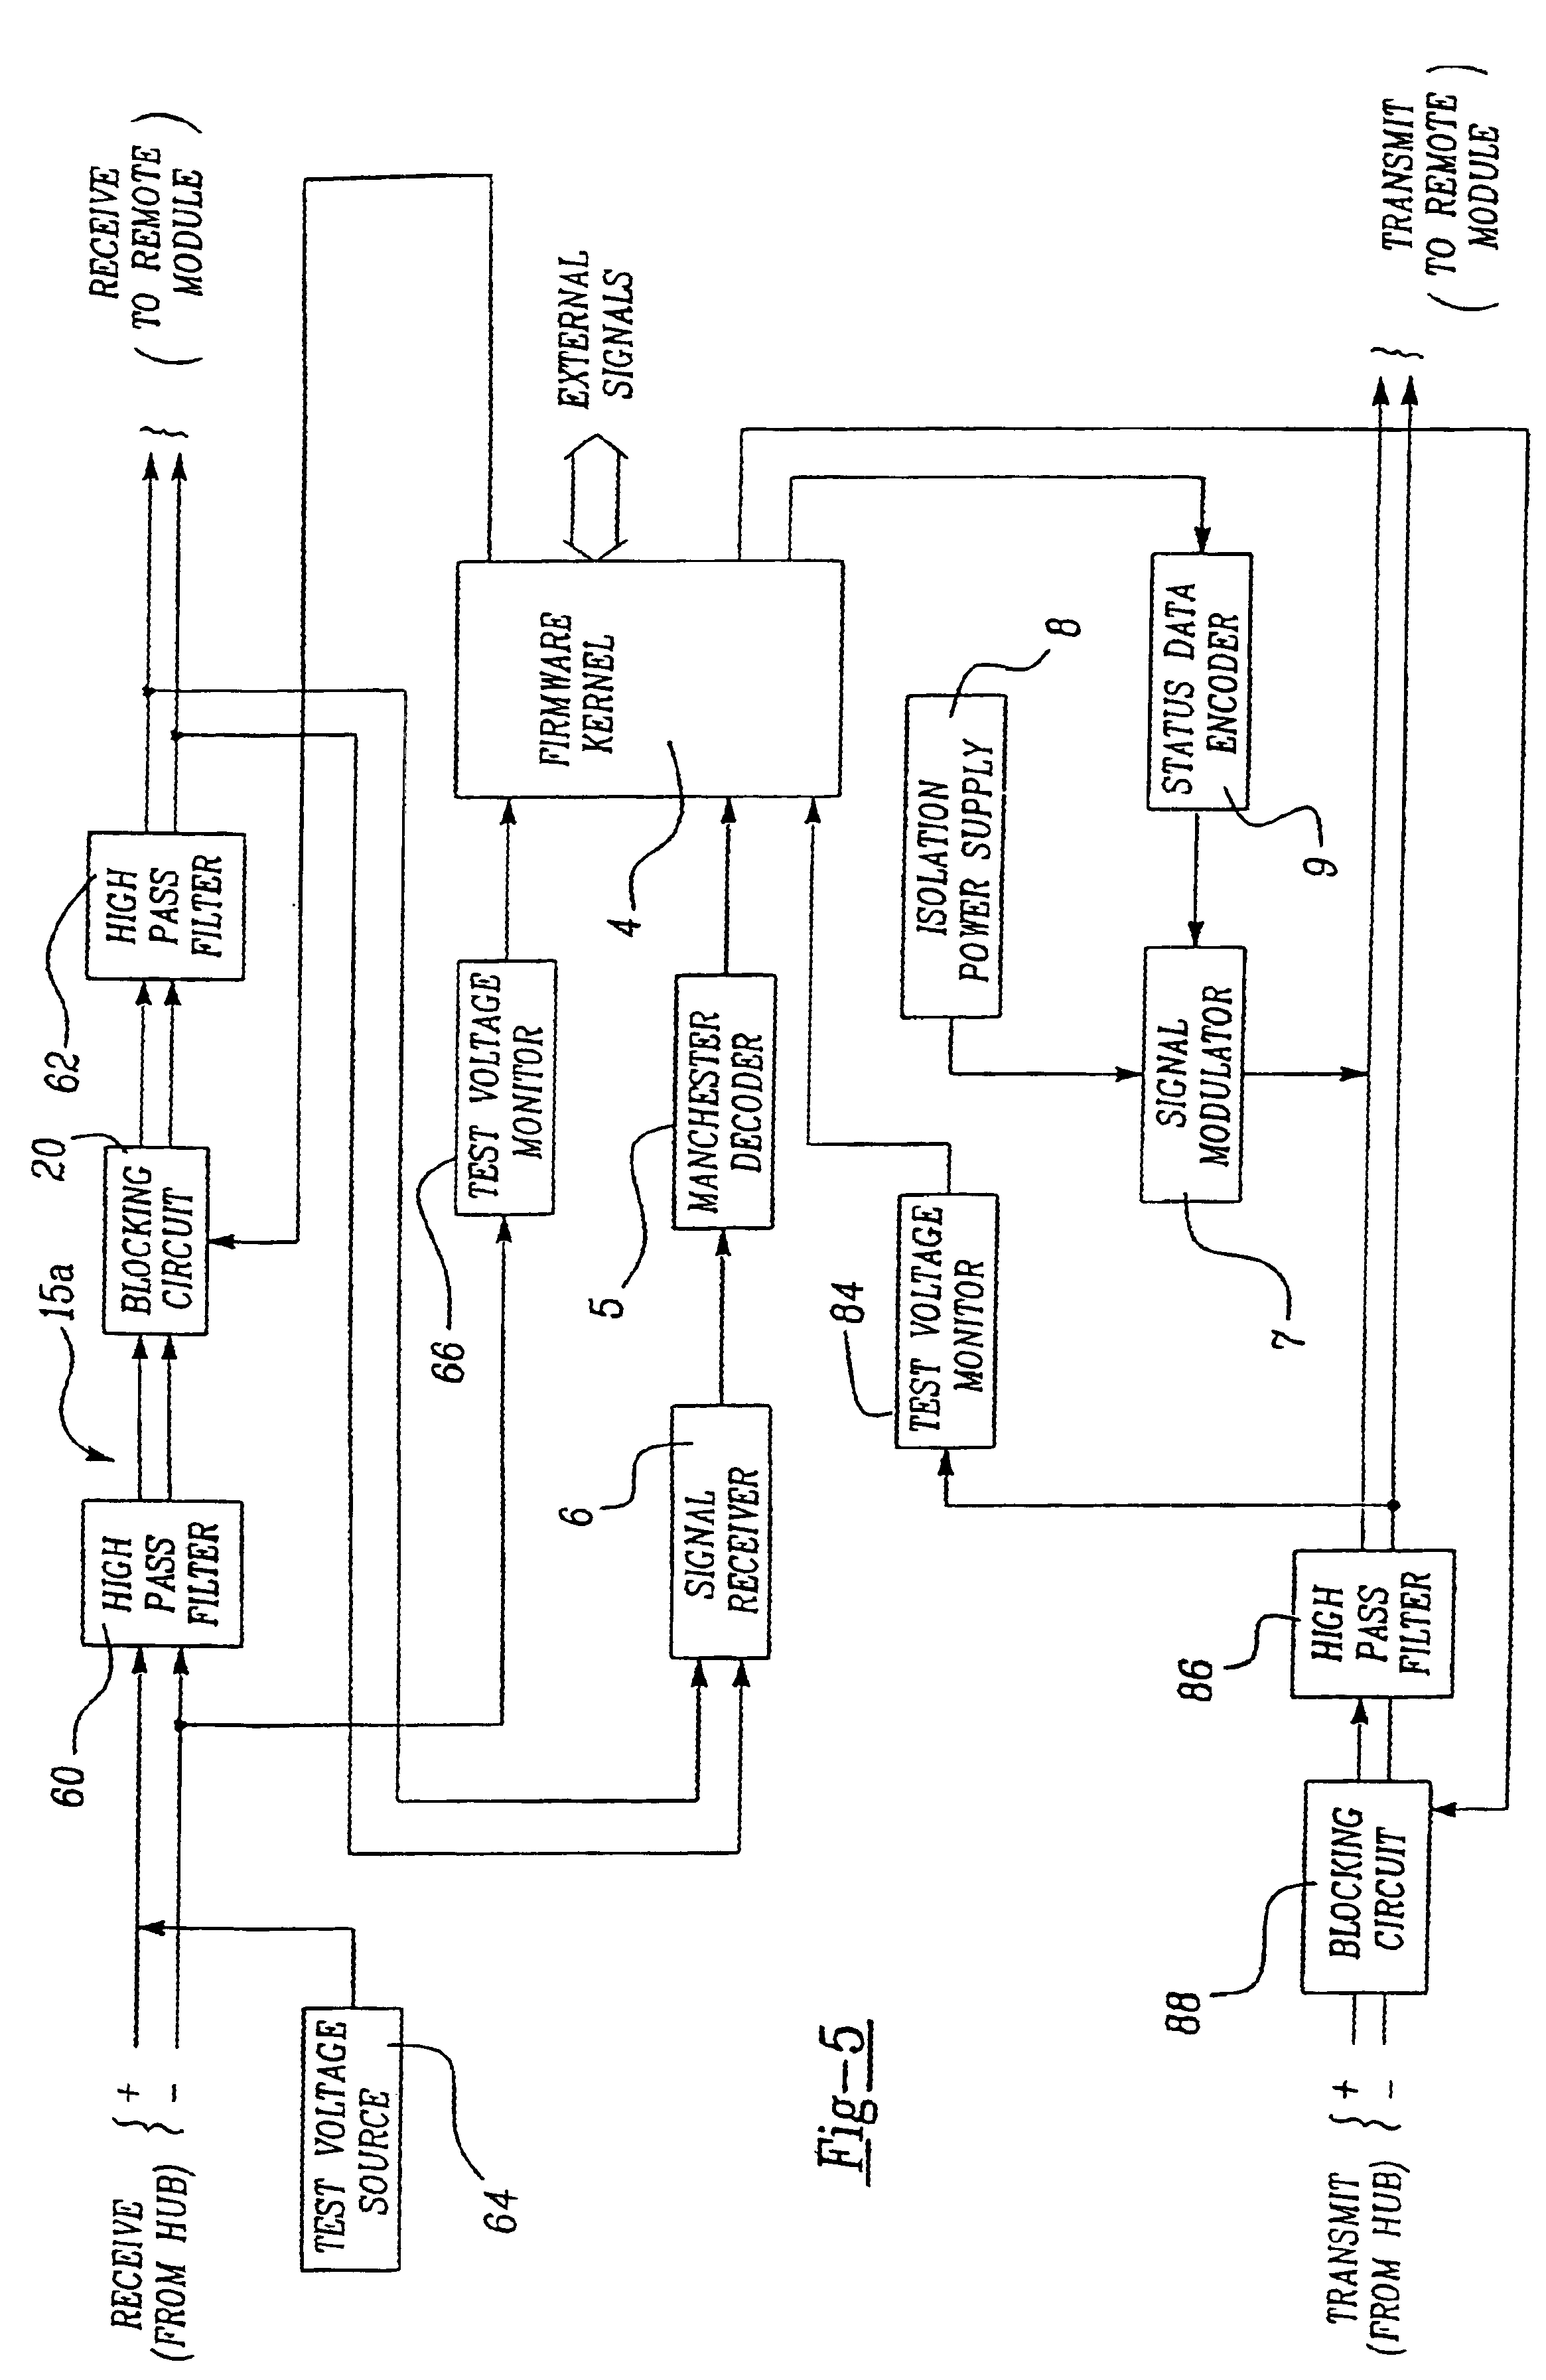 Patent Us 6650622 B1 Fig2 It Has Been Attached An Image Of The Motherboard Block Diagram